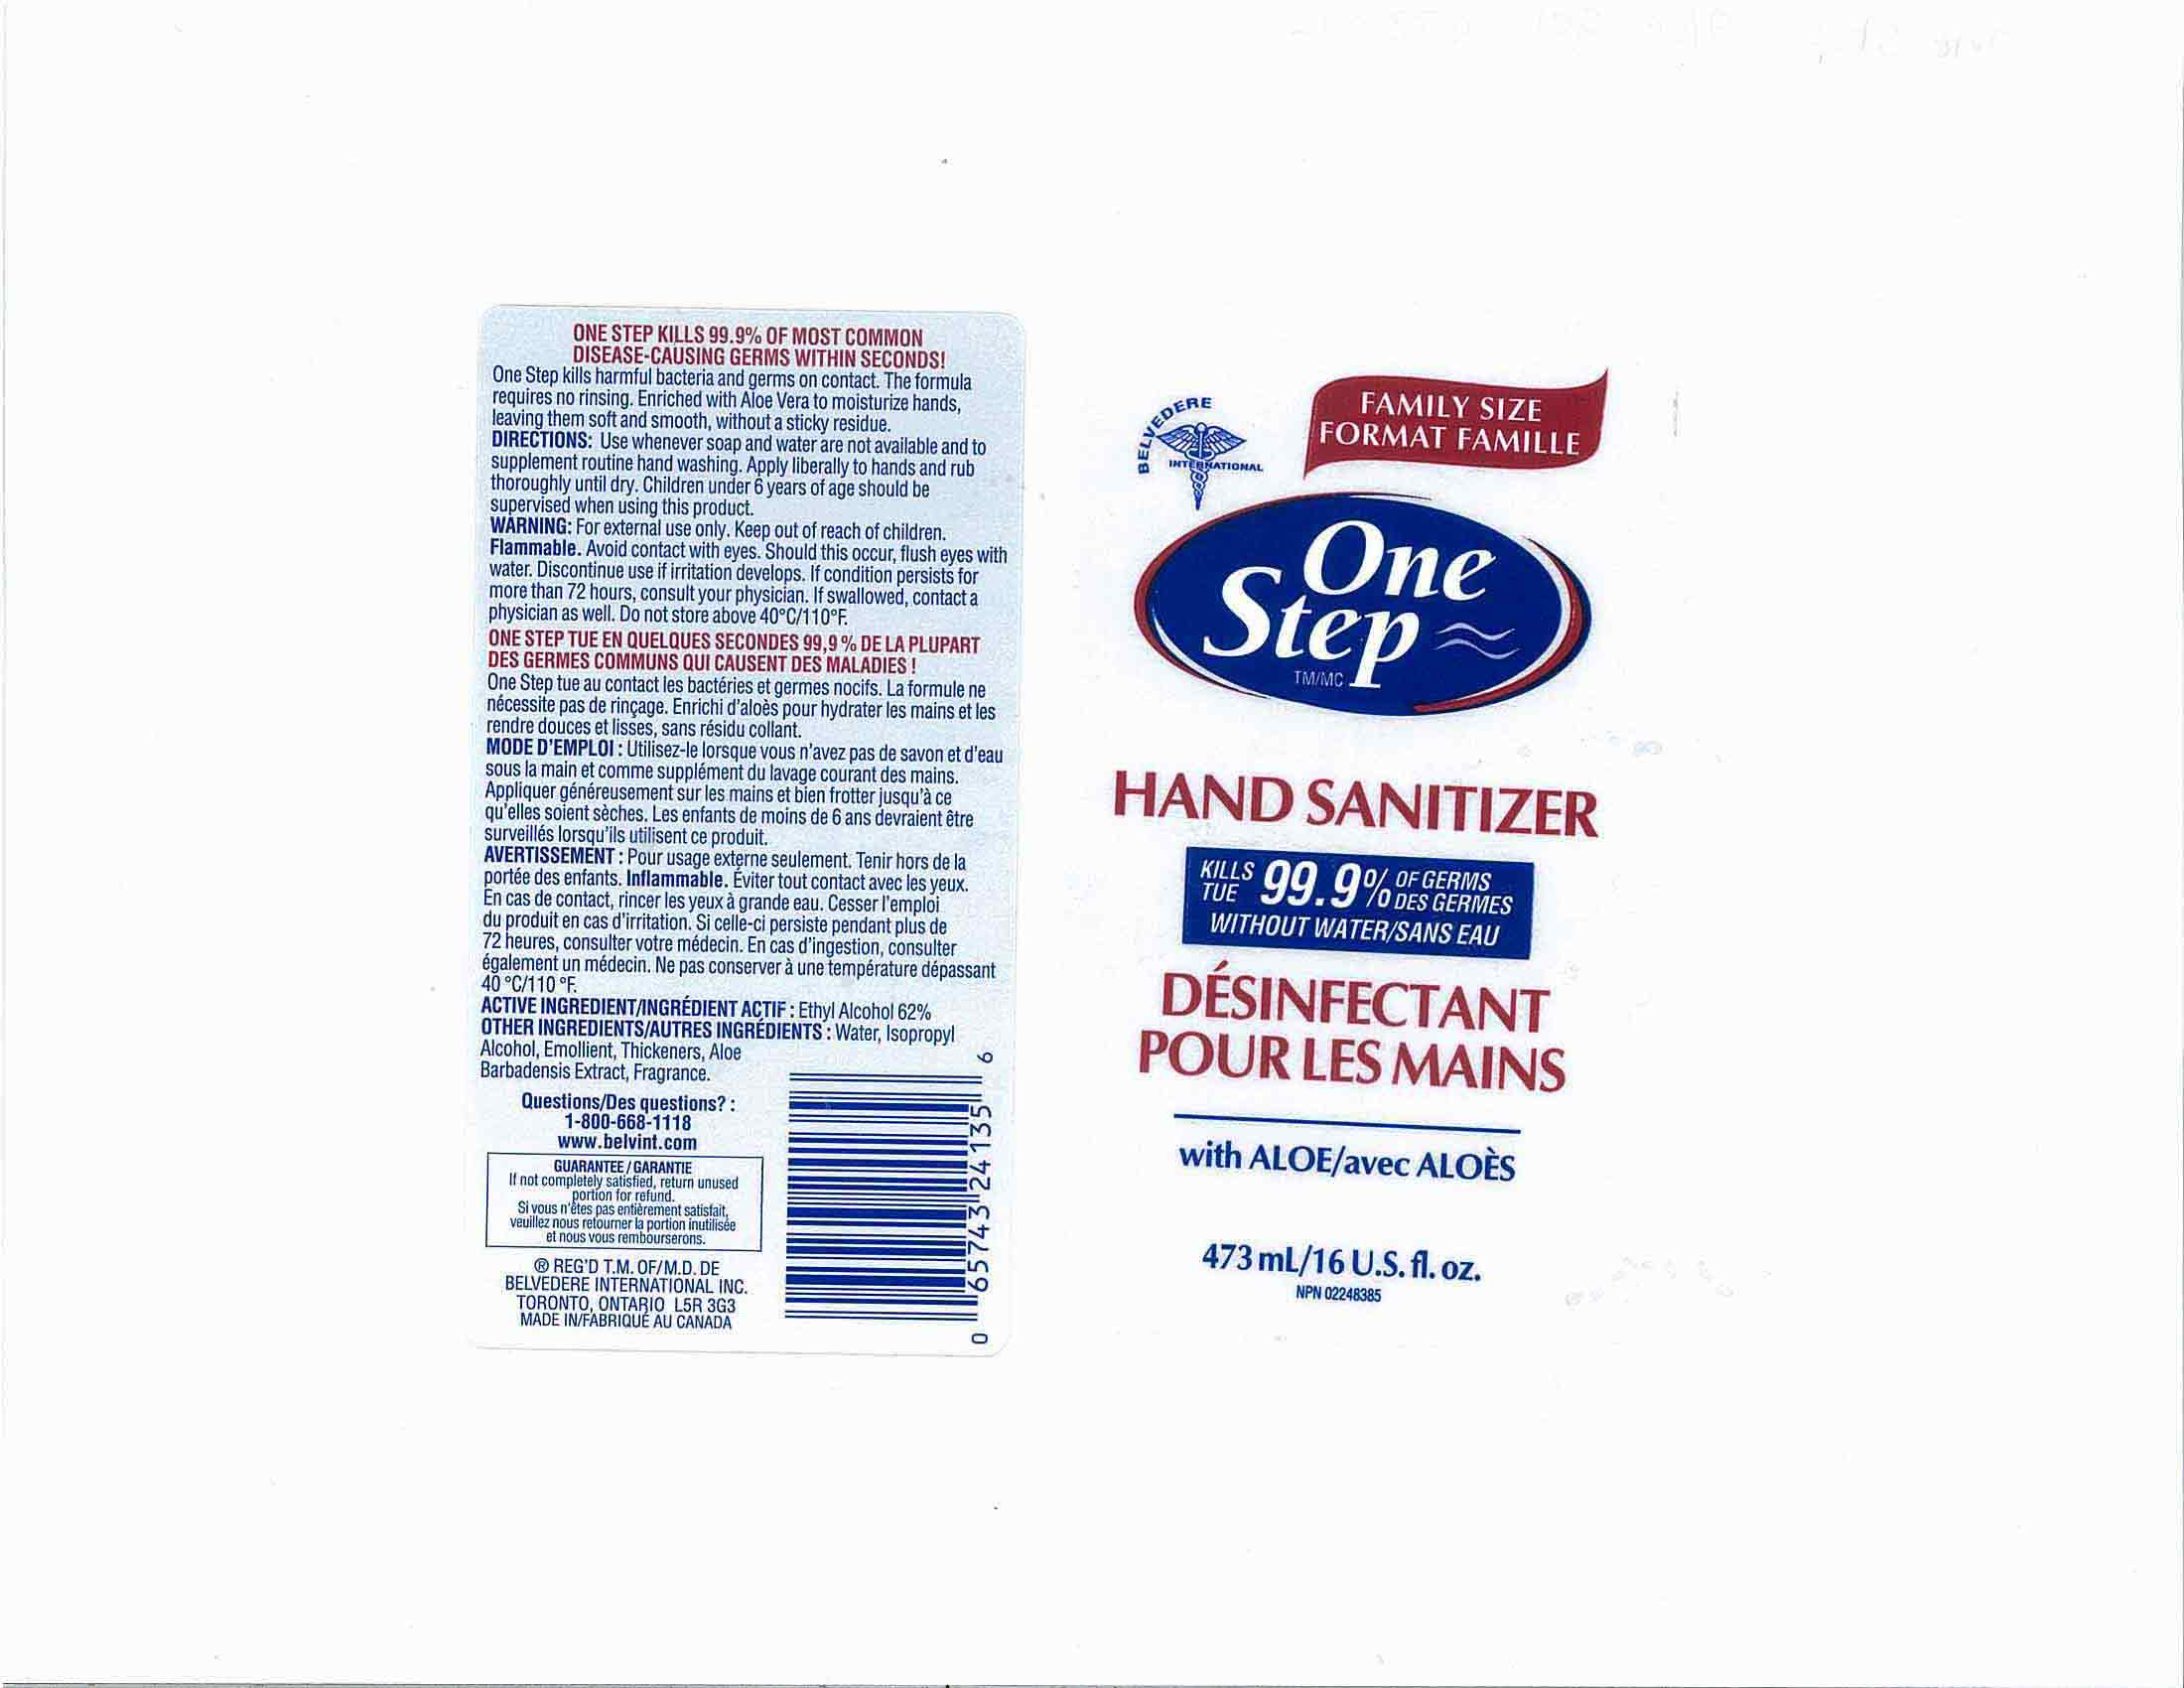 IMAGE OF PRODUCT LABEL